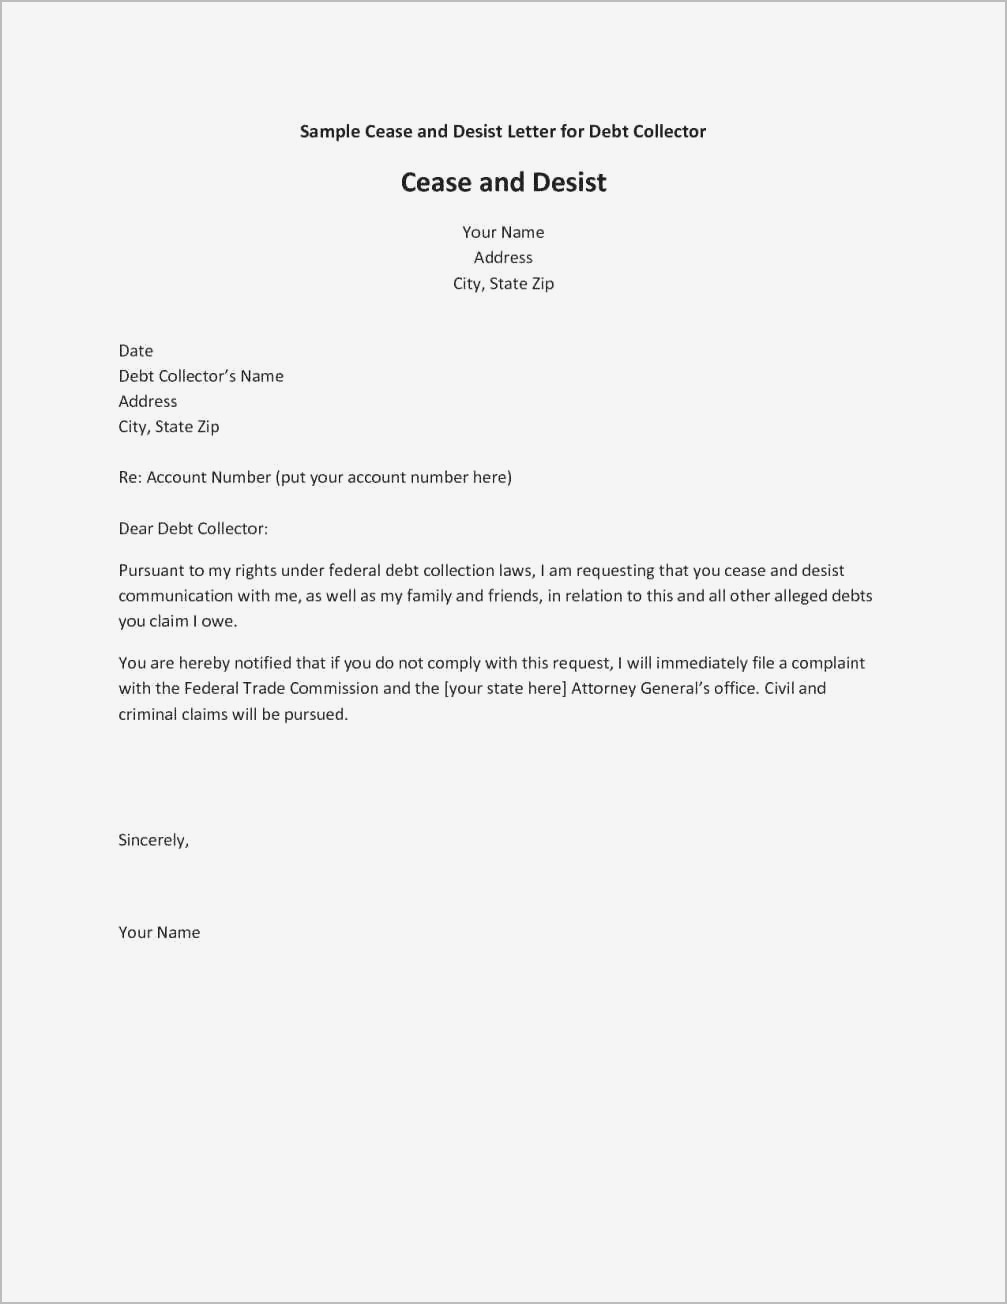 Cease and Desist Letter Slander Template - Inspirational Cease and Desist Letter Example Your Template